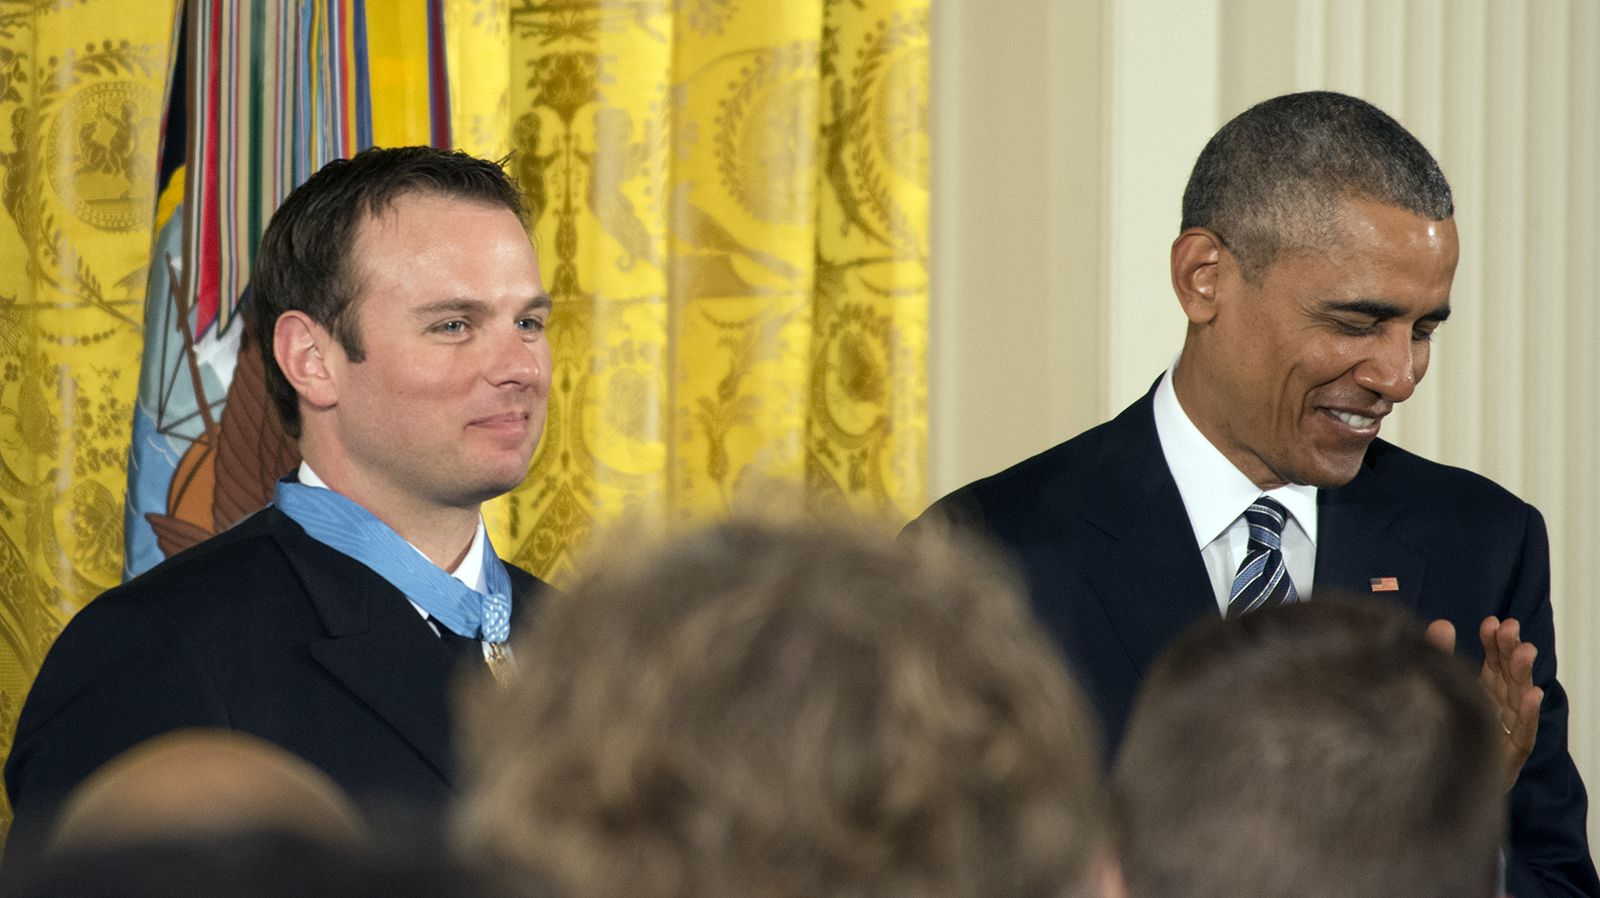 Navy Seal Receives Medal Of Honor For Hostage Rescue Medal Of Honor Medal Of Honor Recipients Navy Seals